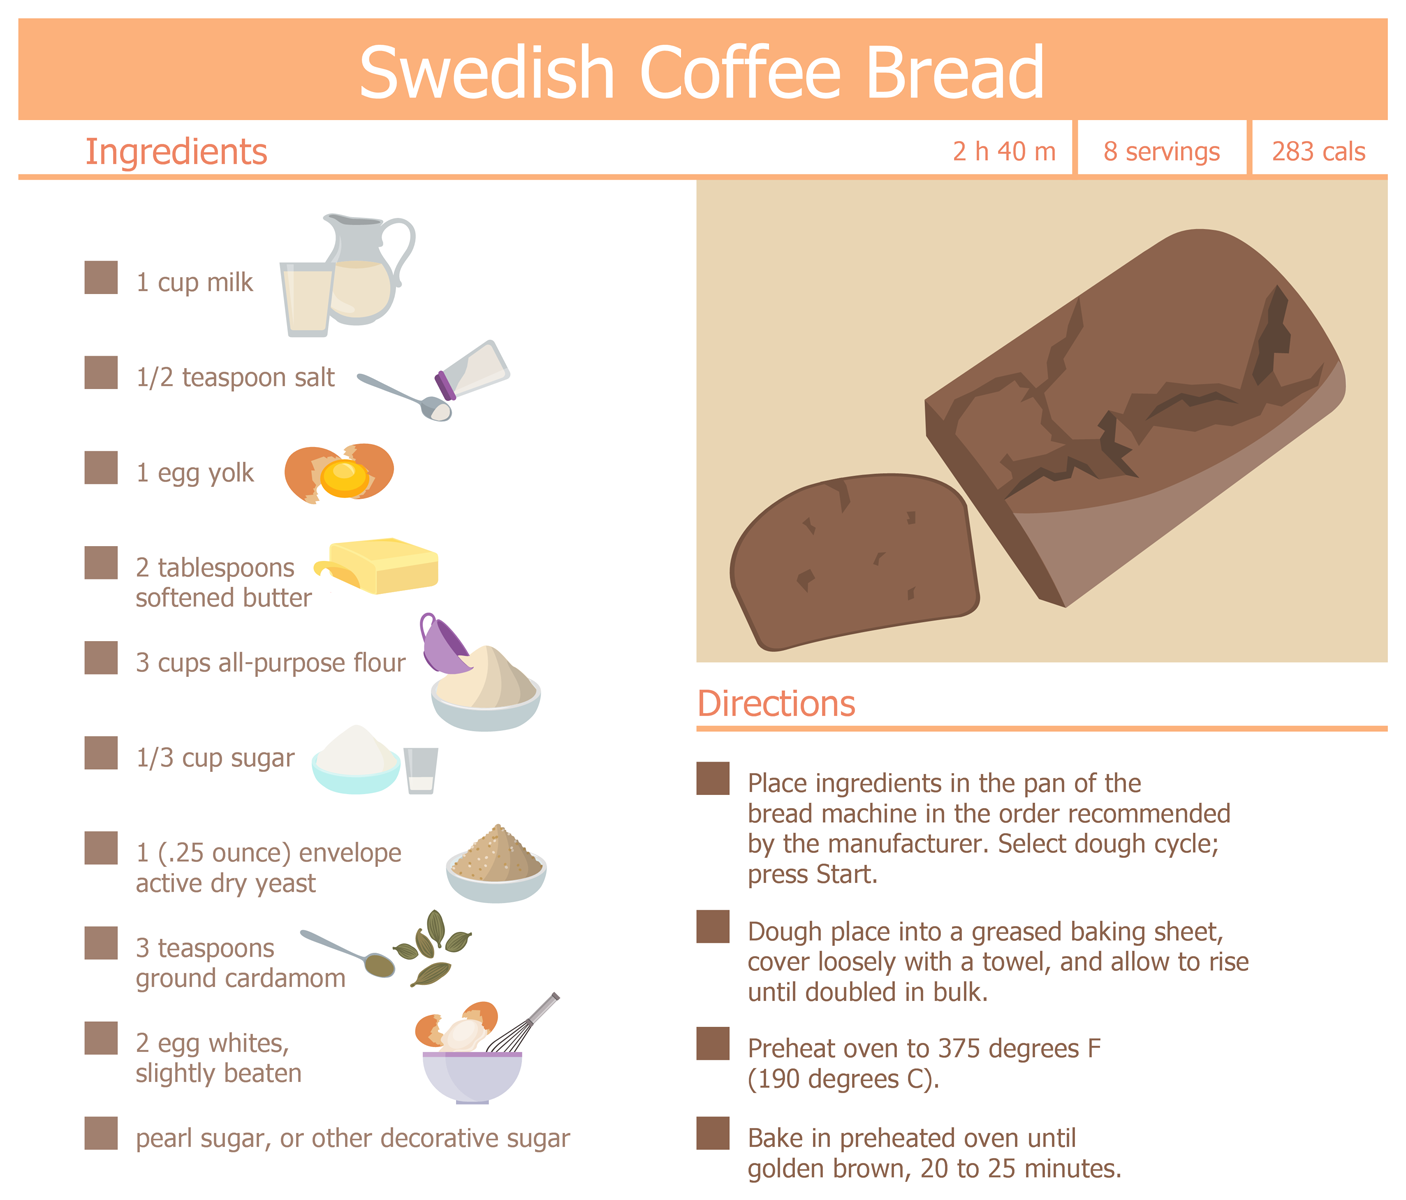 Swedish Coffee Bread Recipe